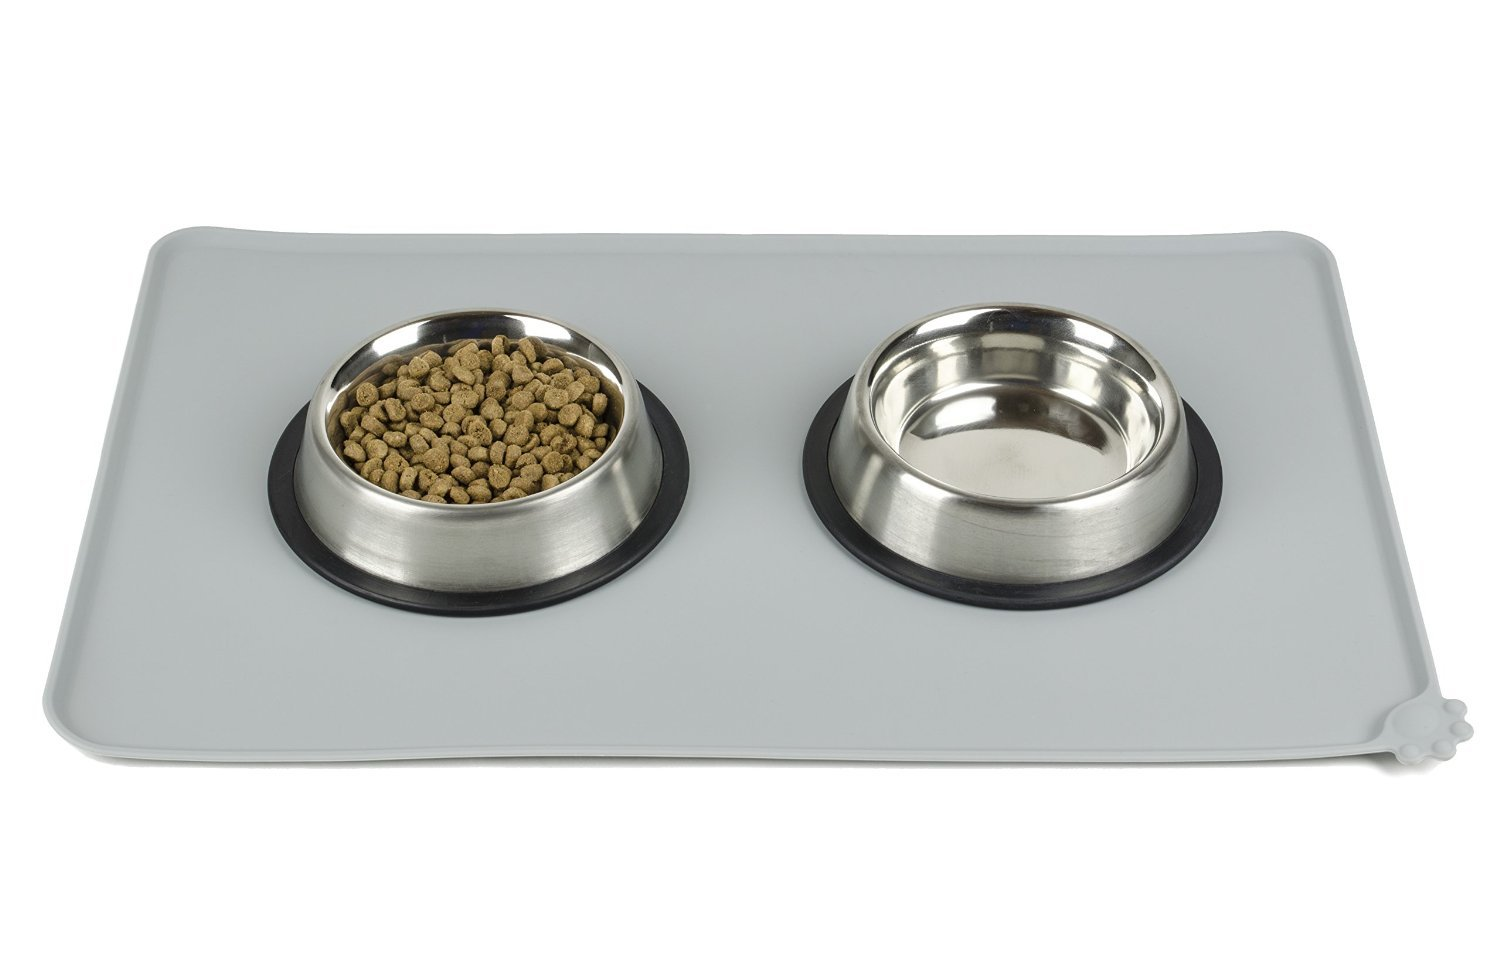 Tinkle ONE Silicone Pet Feeding Mat Waterproof Non-Slip Pet Food Bowl Mat Feeding Tray for Cats and Dogs (Grey )